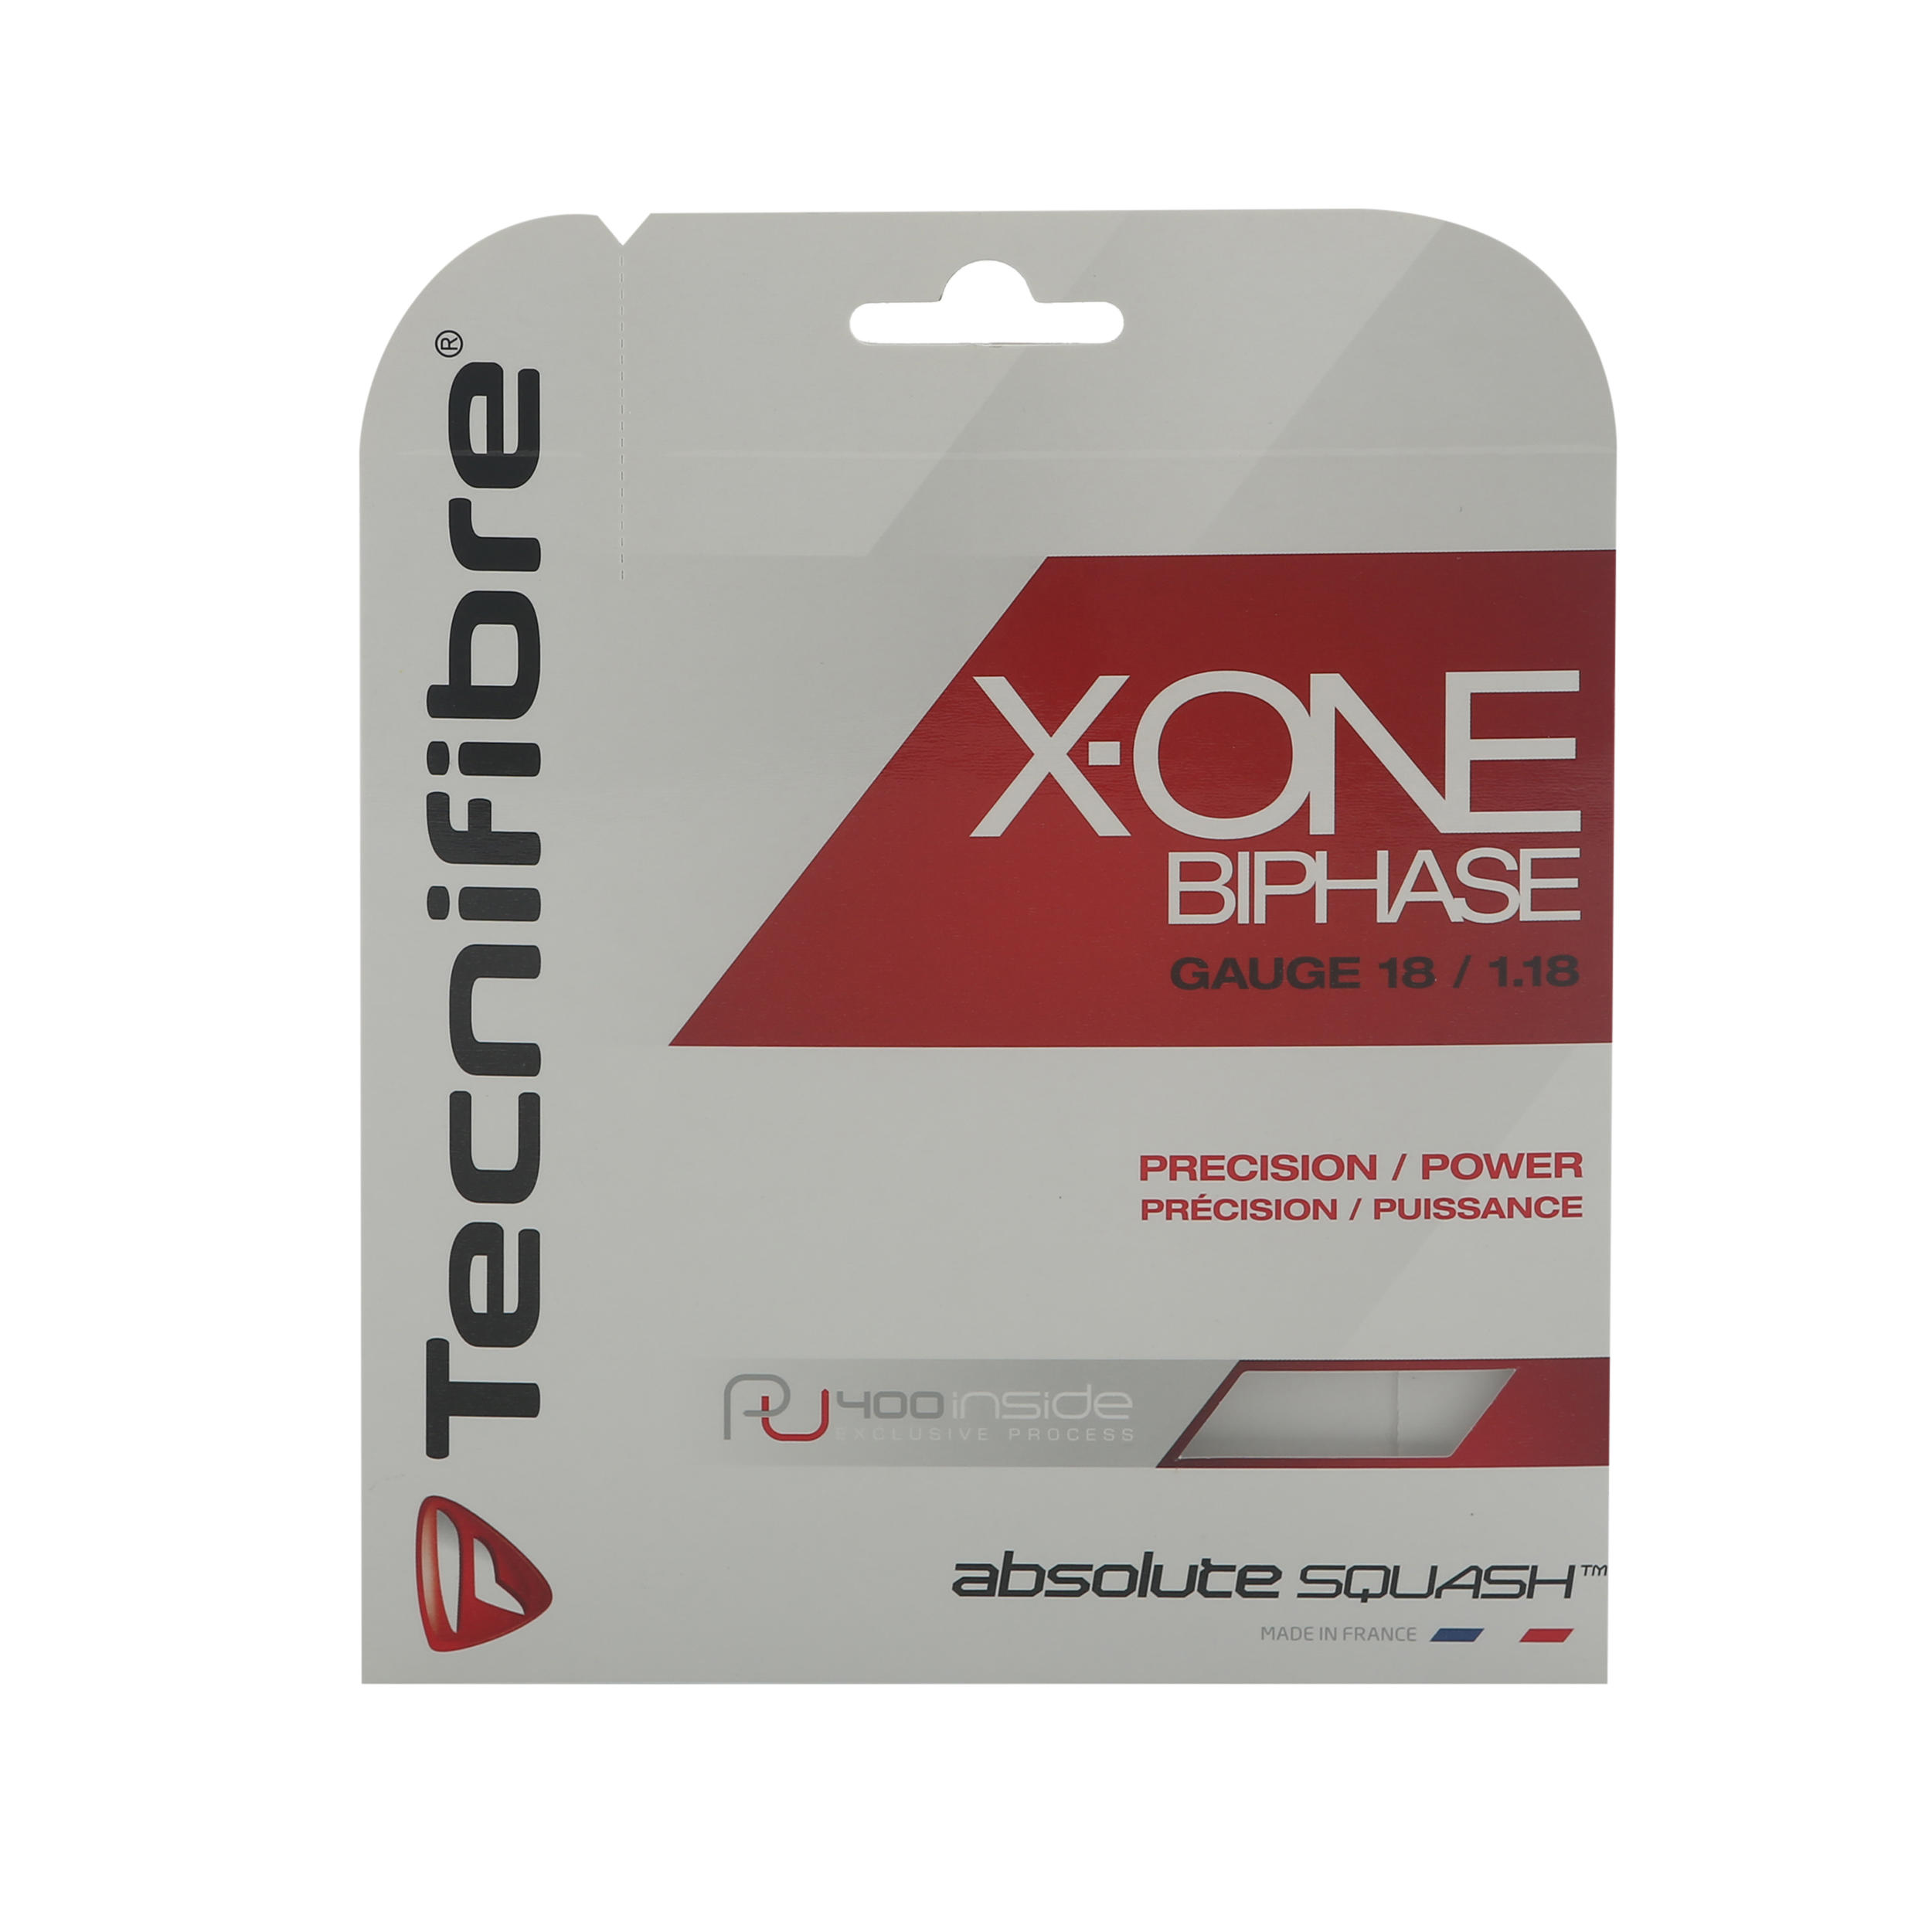 Tecnifibre Squashsnaar X-one biphase 1,18mm rood